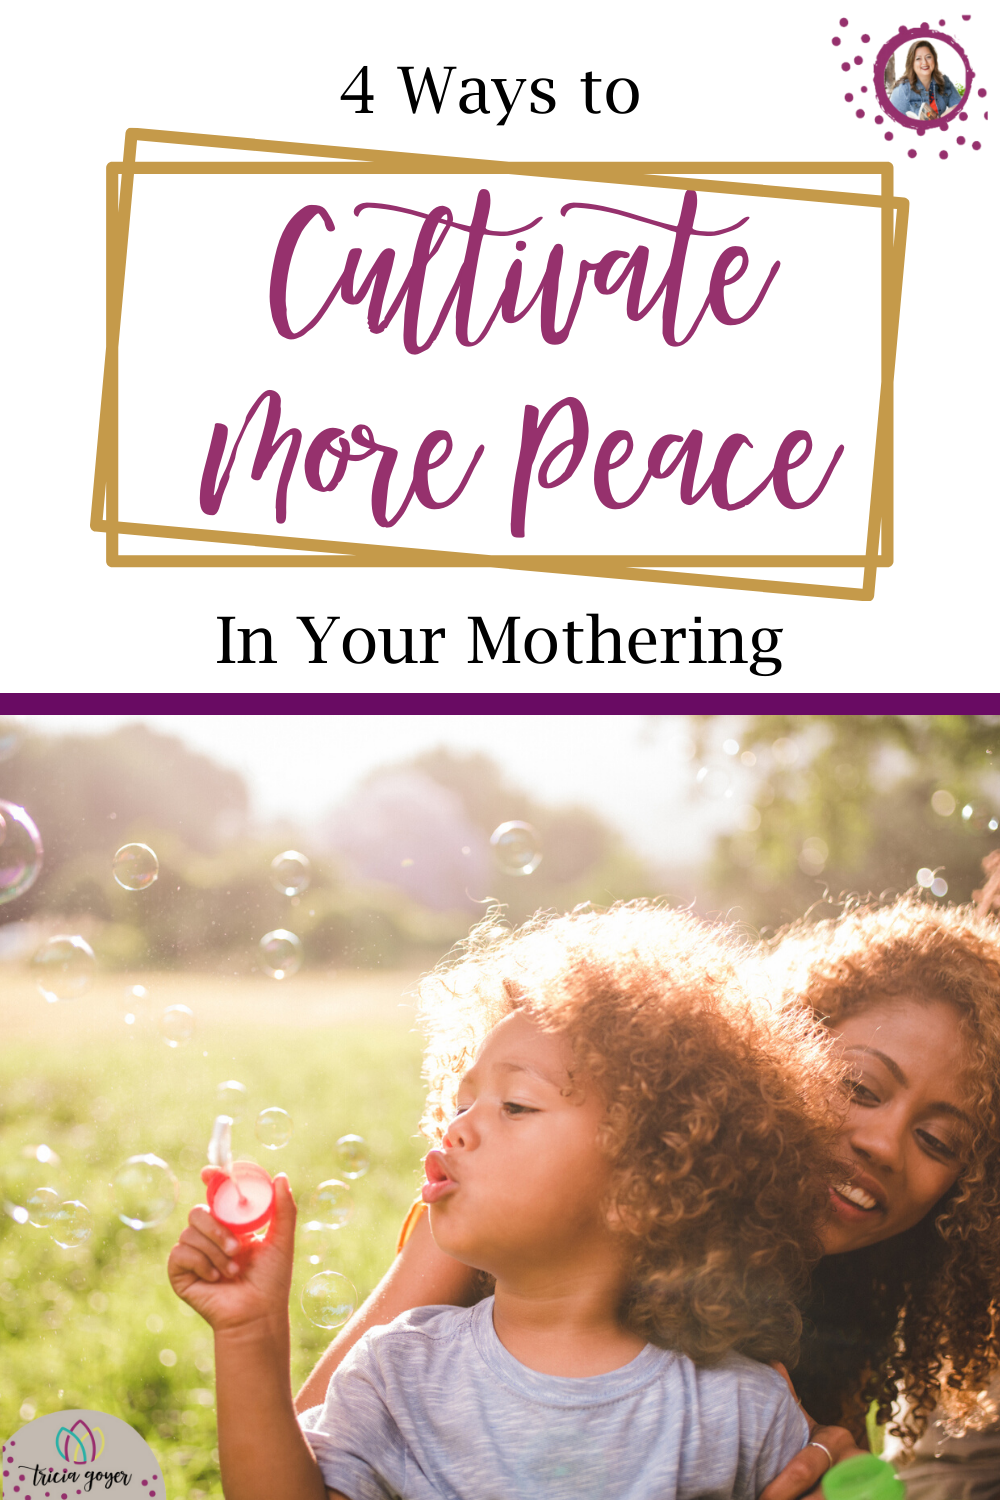 Does it seem impossible when you think about how to cultivate more peace in your home? Read on as Rebekah Hargraves shares 4 practical ways you can begin today.